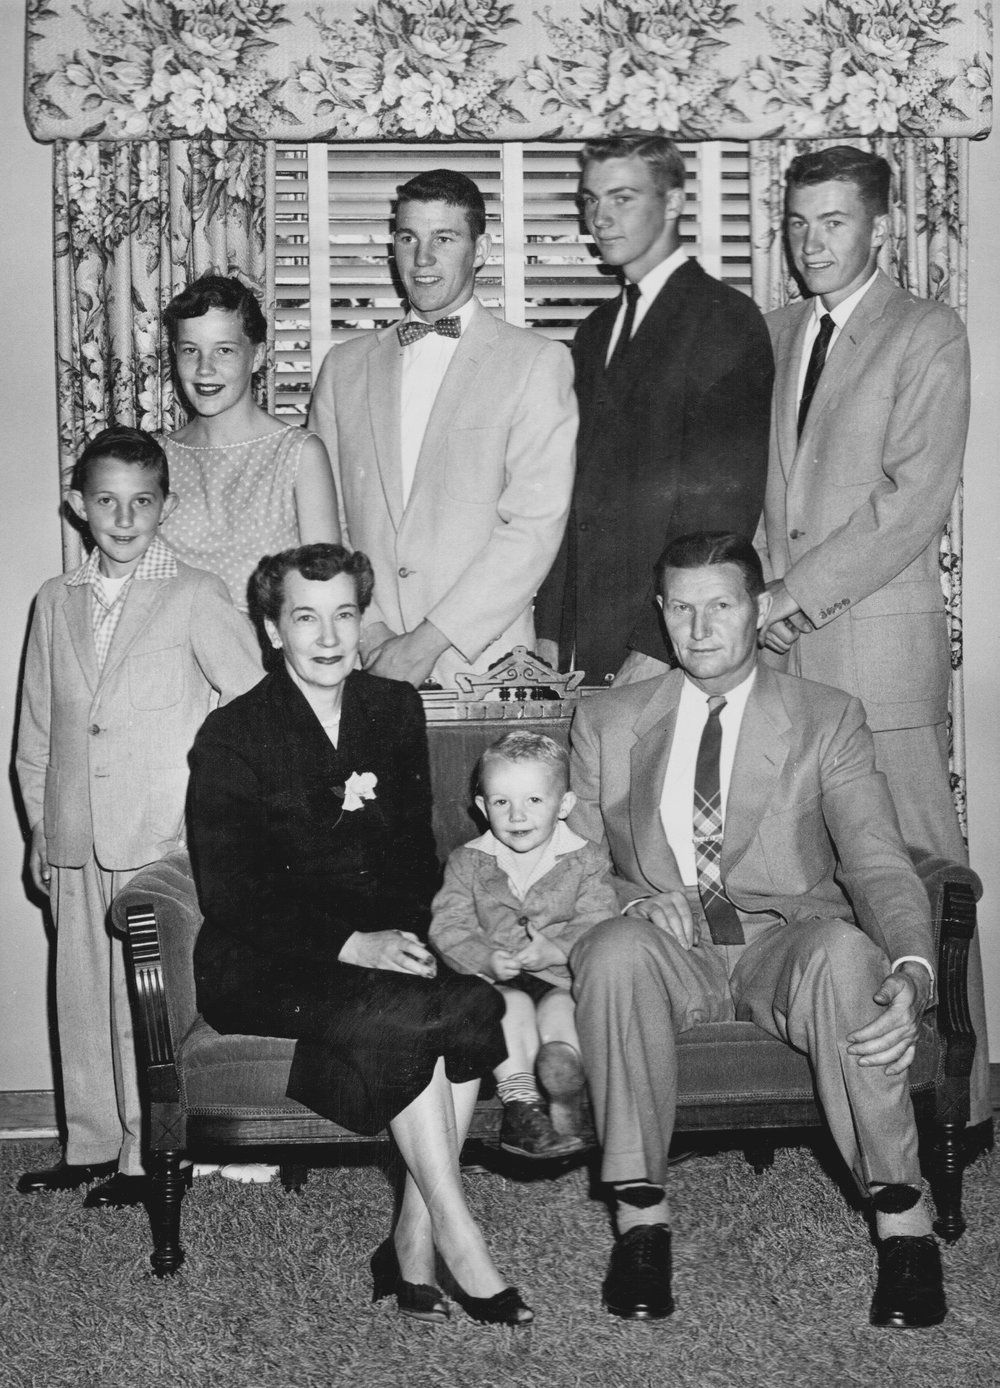 Click to enlarge. Top: Drew, Suzanne, Glade, Briggs and Brent, Front: Addie (Grandma Hall), Mark and Leness (Grandpa Hall) photo taken ca. 1948